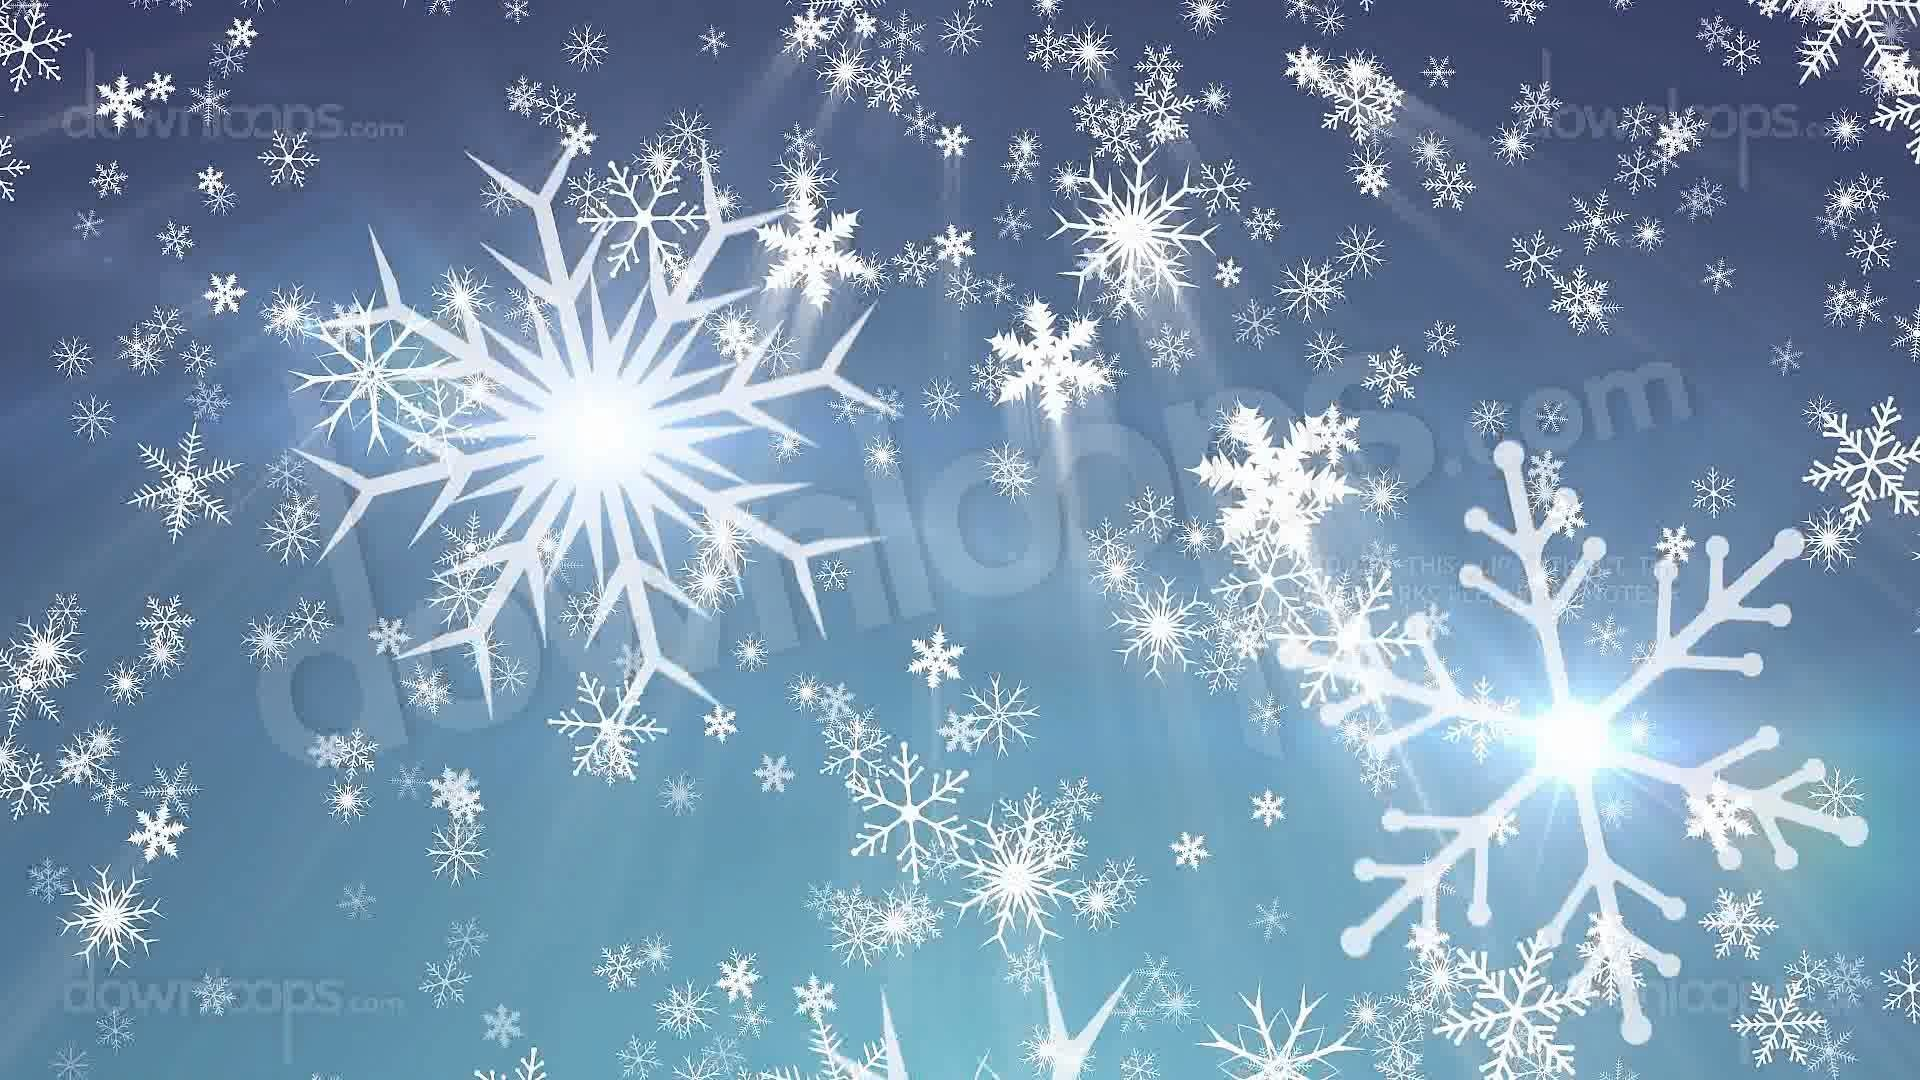 Falling Snow Animated Wallpaper 57 Images